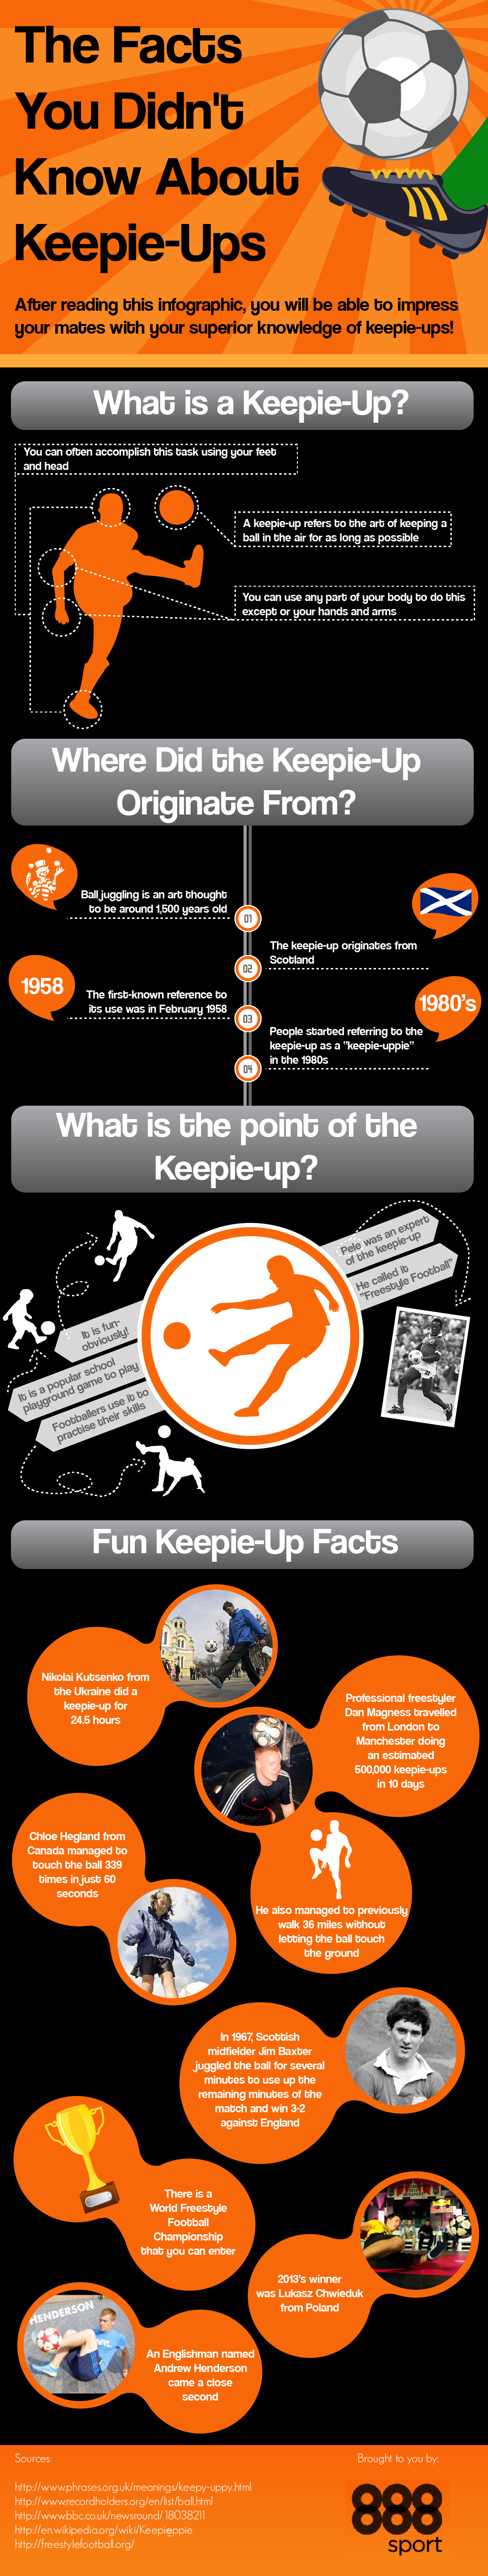 The Facts You Didn't Know About Keepy-Ups